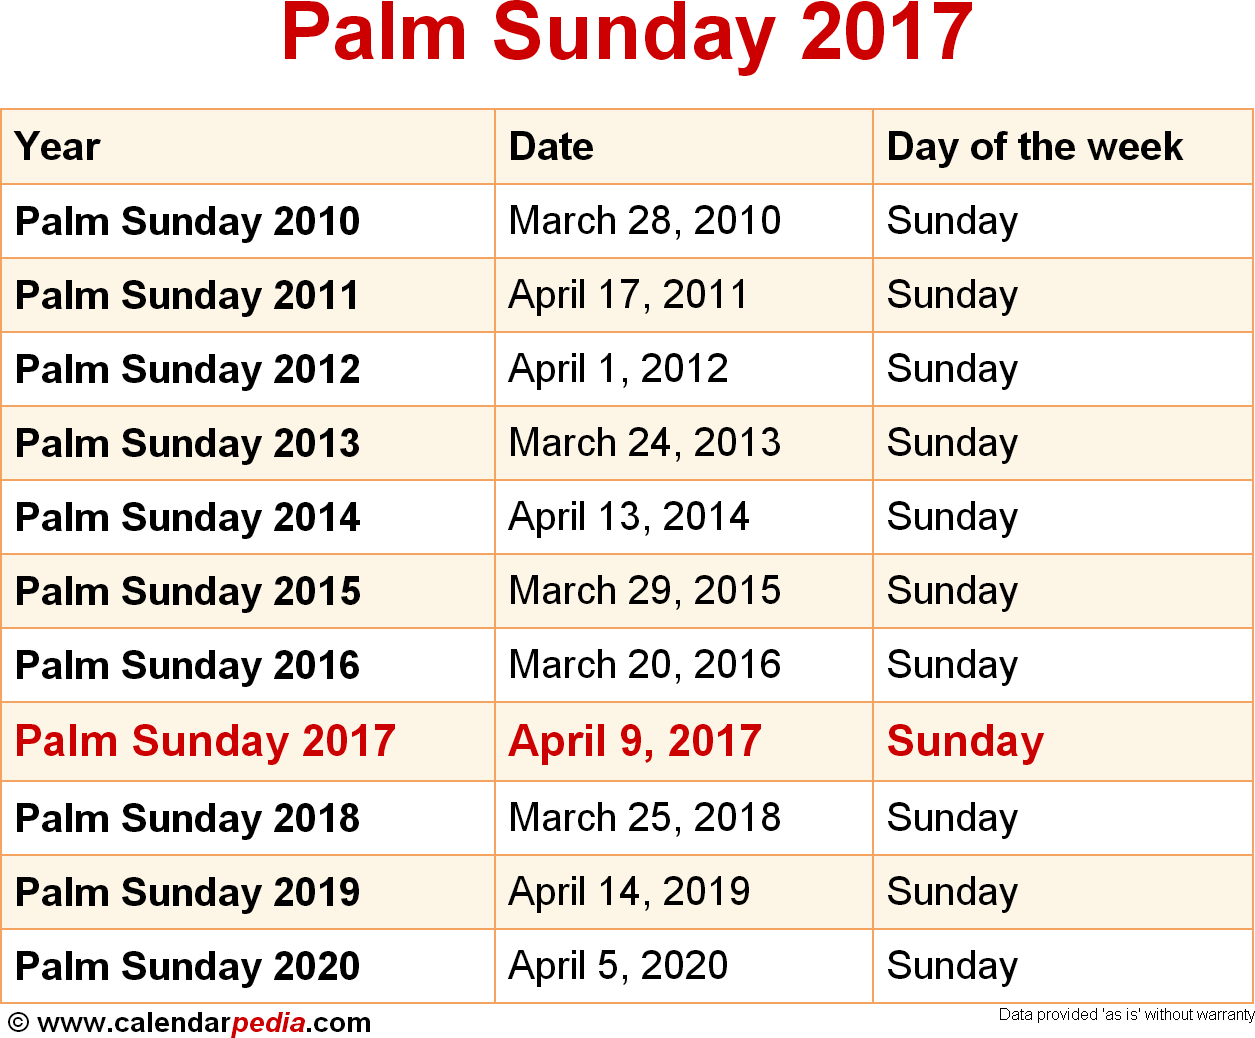 Palm Sunday 2017